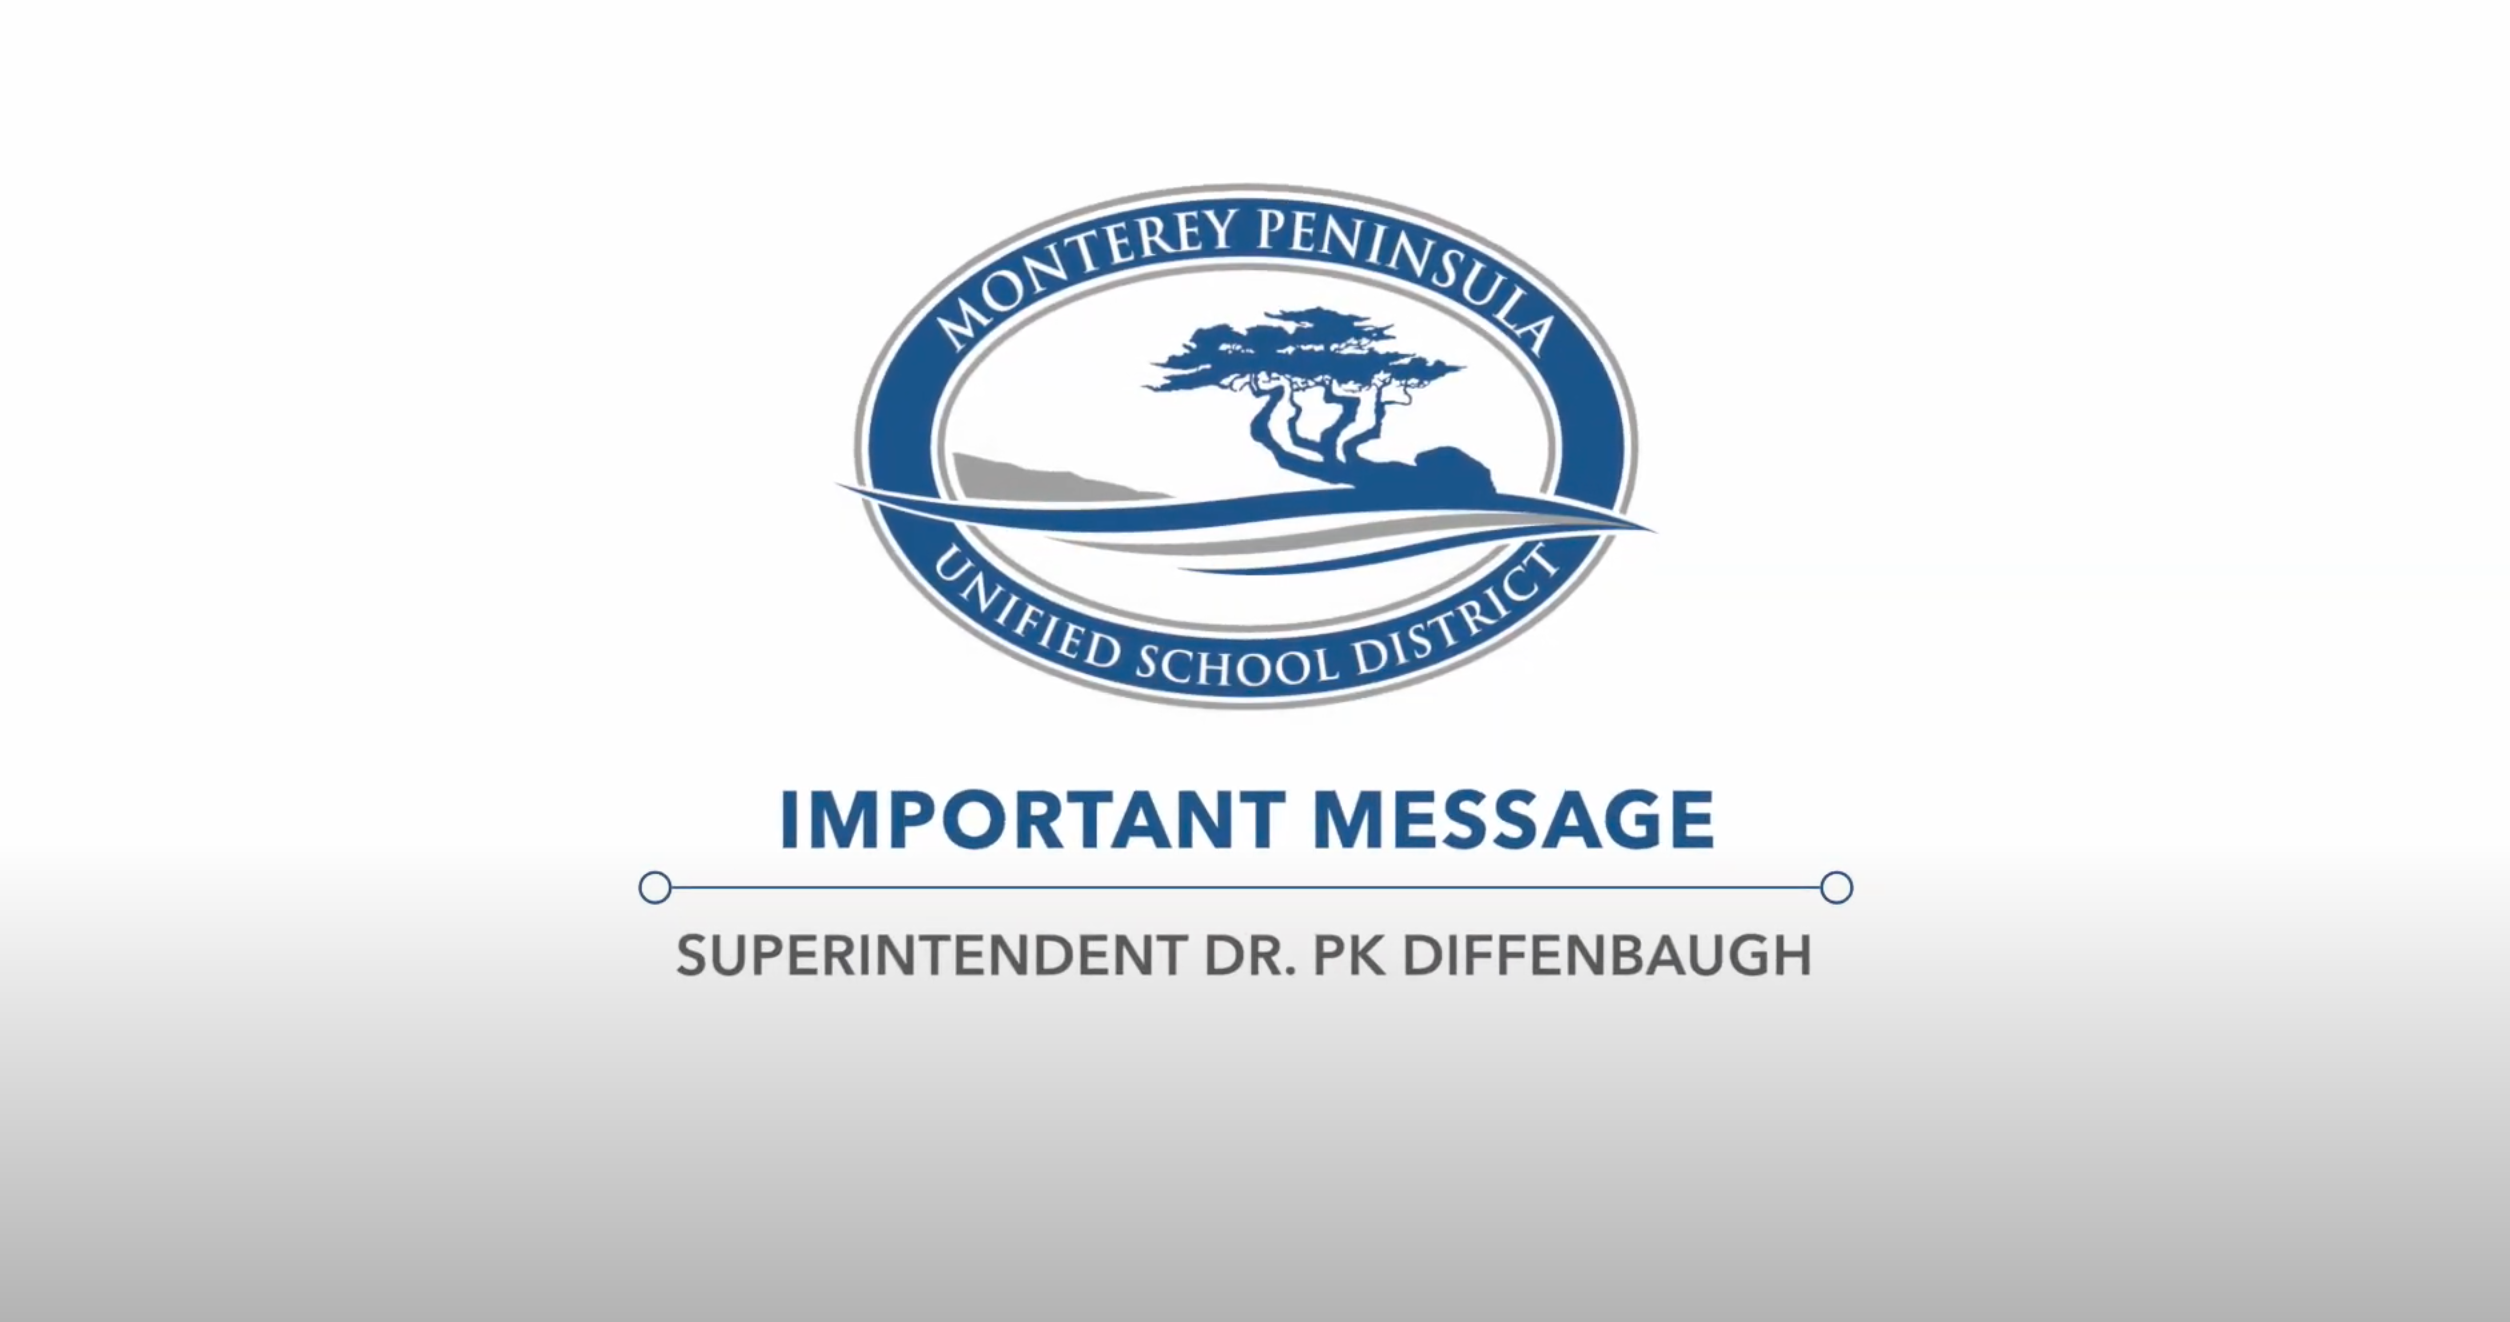 Spanish Video Message from the Superintendent